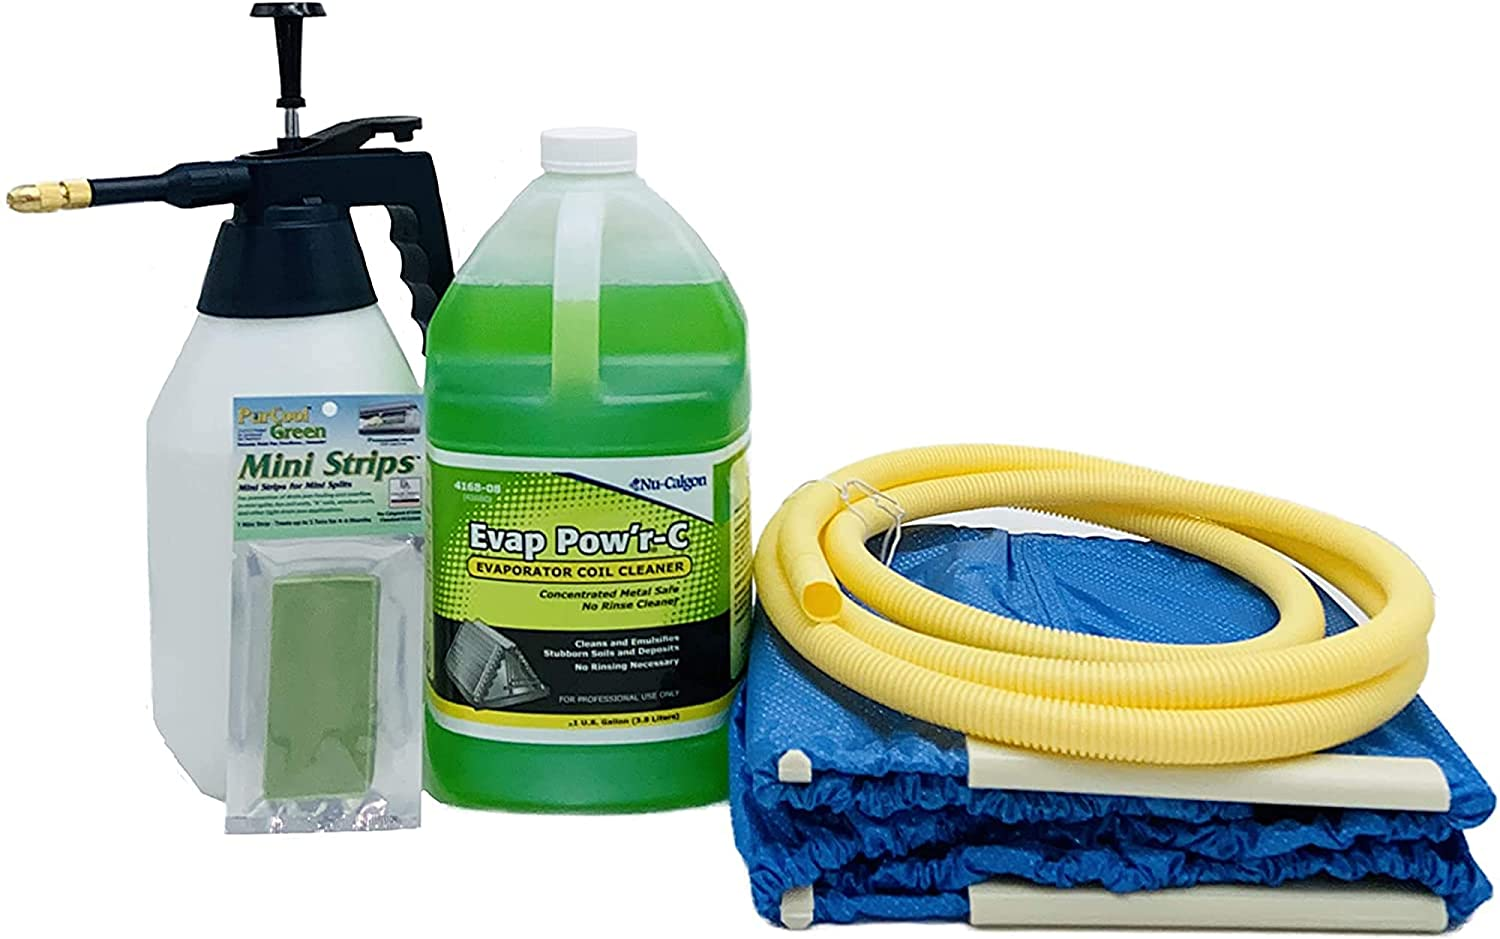 Complete Mini Split Cleaning Kit specialty Free shipping / New shop Pow'r Evap Featuring Nu-Calgon